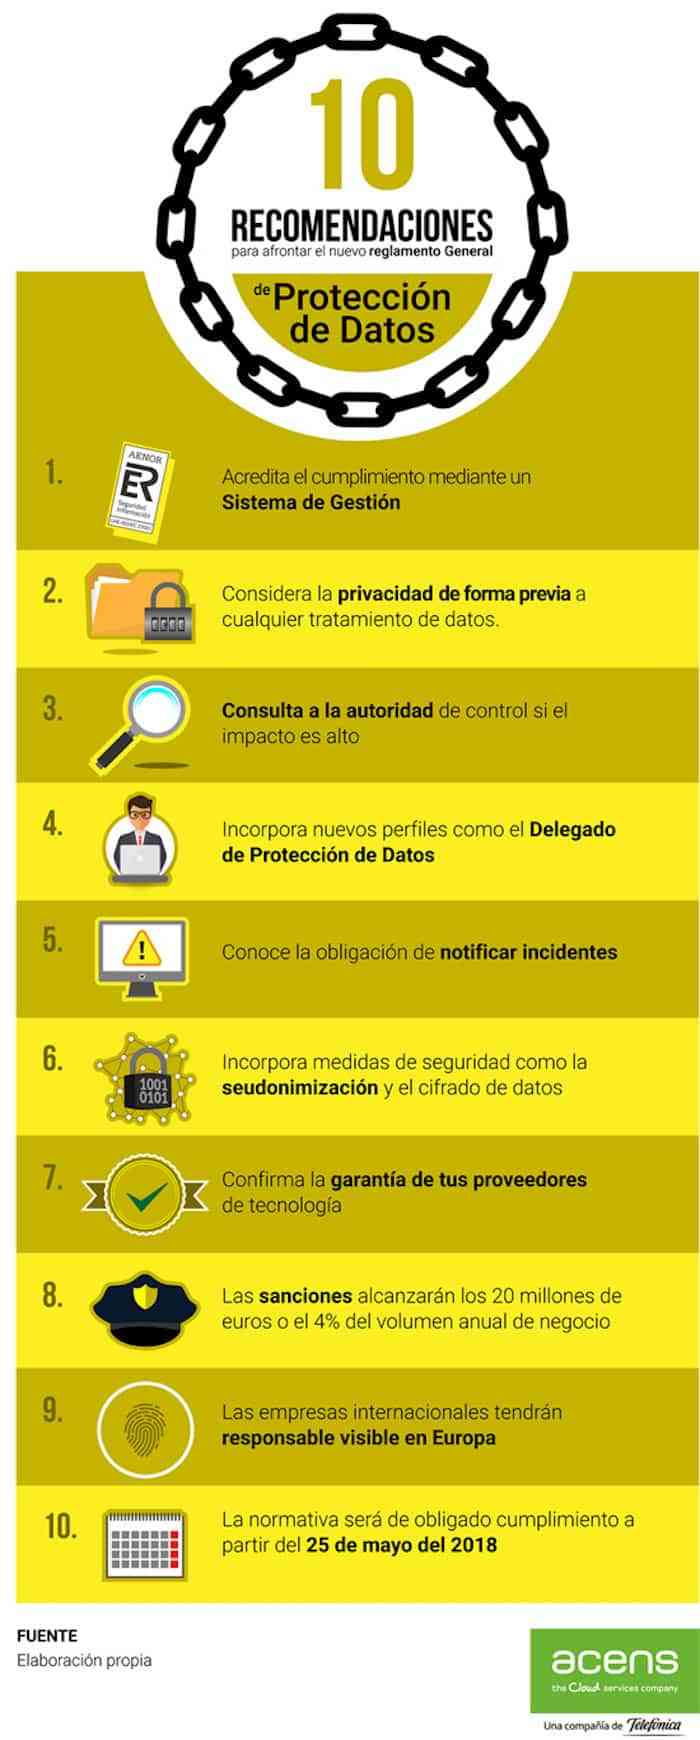 10 recomendaciones reglamento general proteccion datos acens cloud